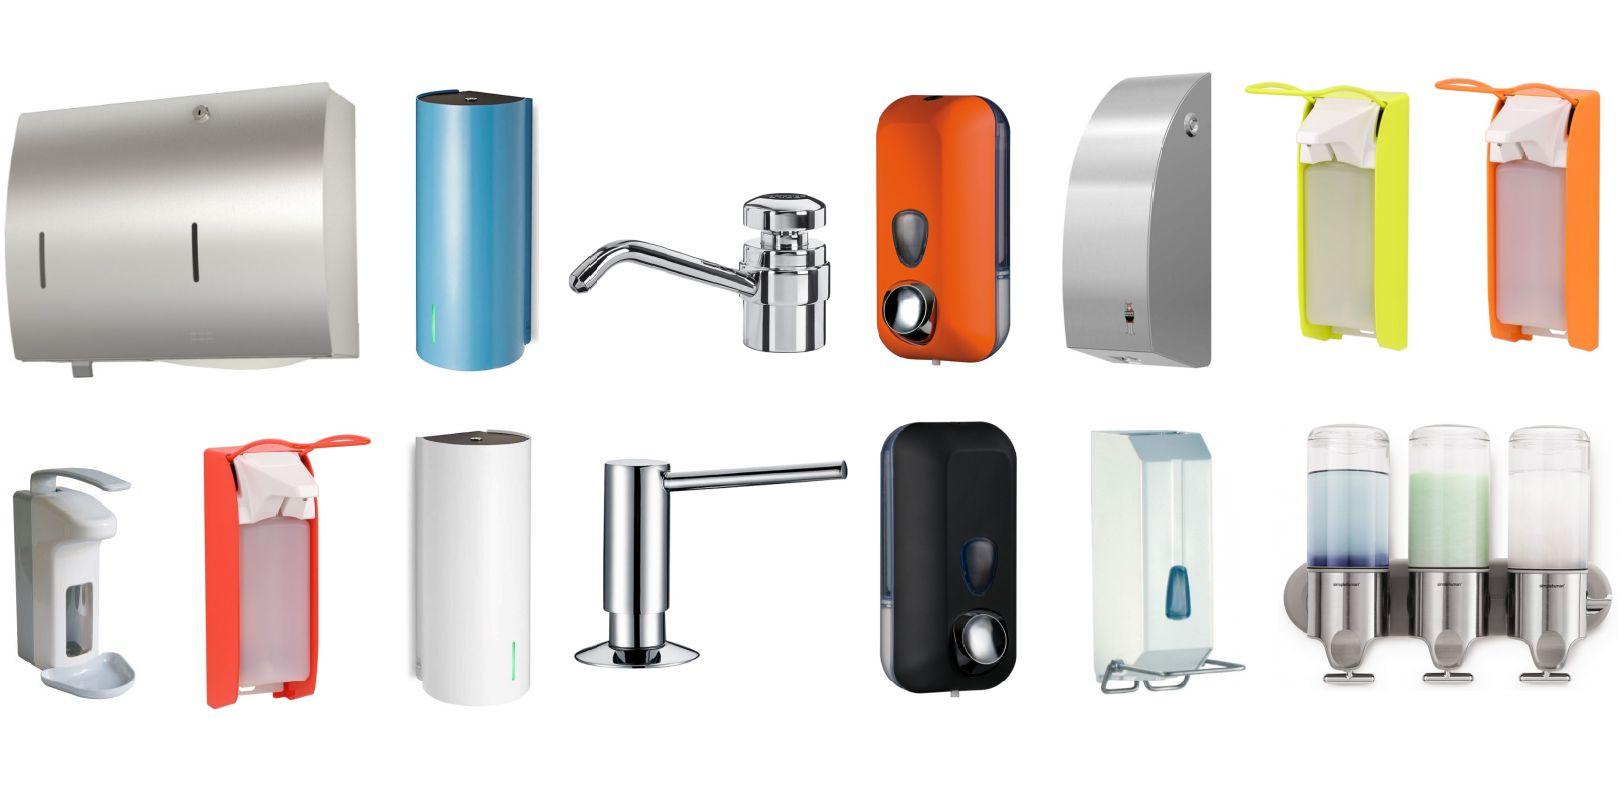 Sensor-and-Push-Button-Soap-Dispensers